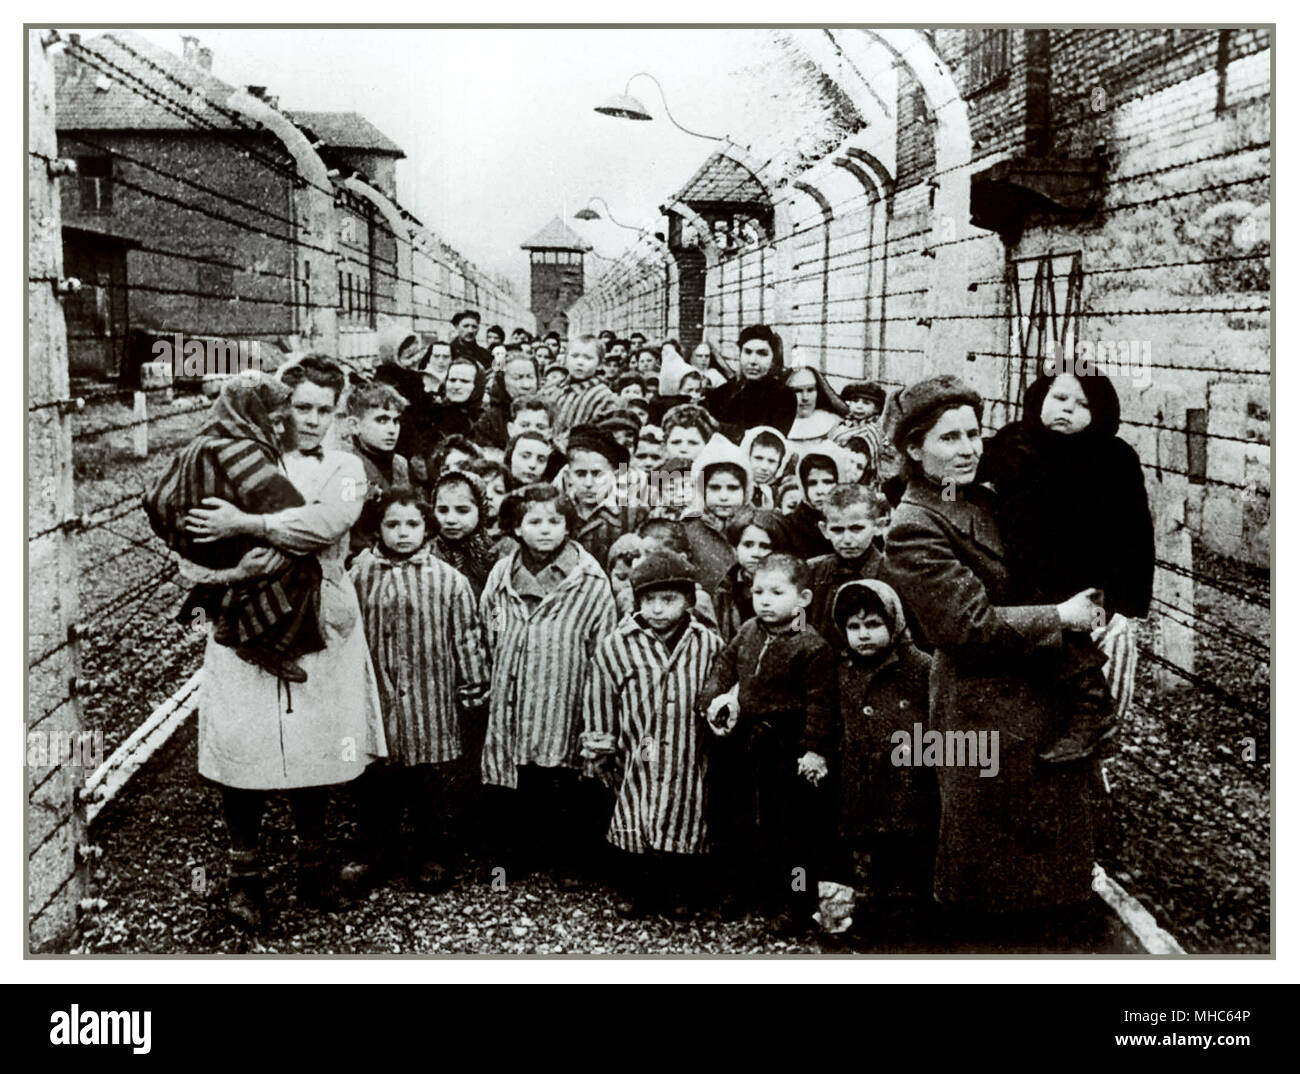 AUSCHWITZ SURVIVORS CHILDREN BABIES AND WOMEN STRIPED UNIFORM LIBERATION  closed in by stretches of electrified barbed wire, staring without emotion to their liberators. A still frame of horror from Auschwitz Birkenau Nazi concentration camp. Liberation January 27 1945. - Stock Image